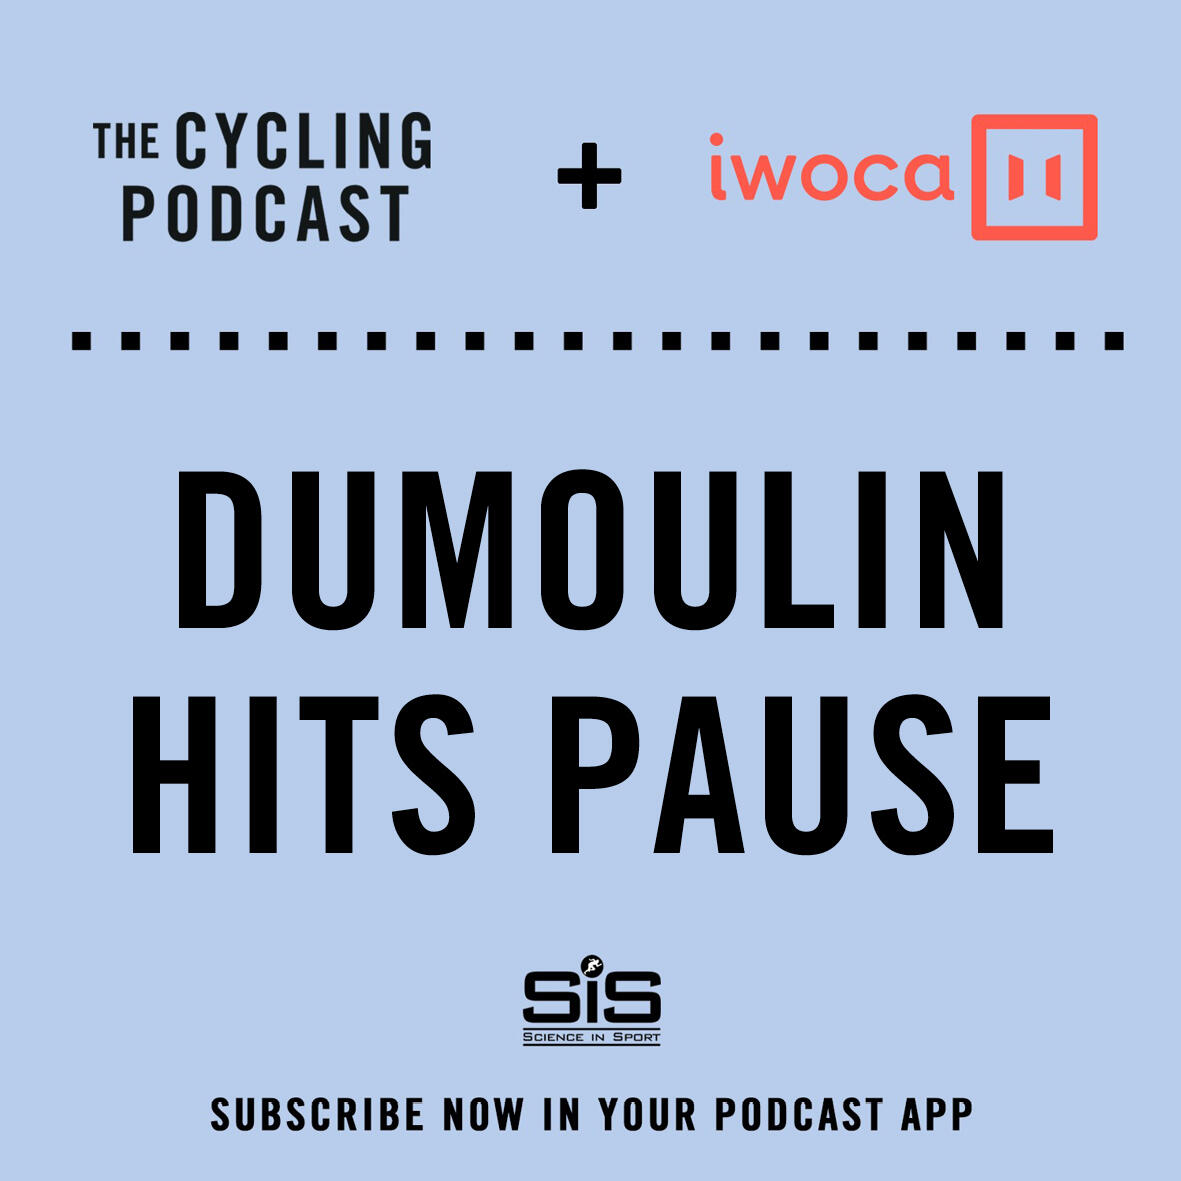 4: Dumoulin hits pause